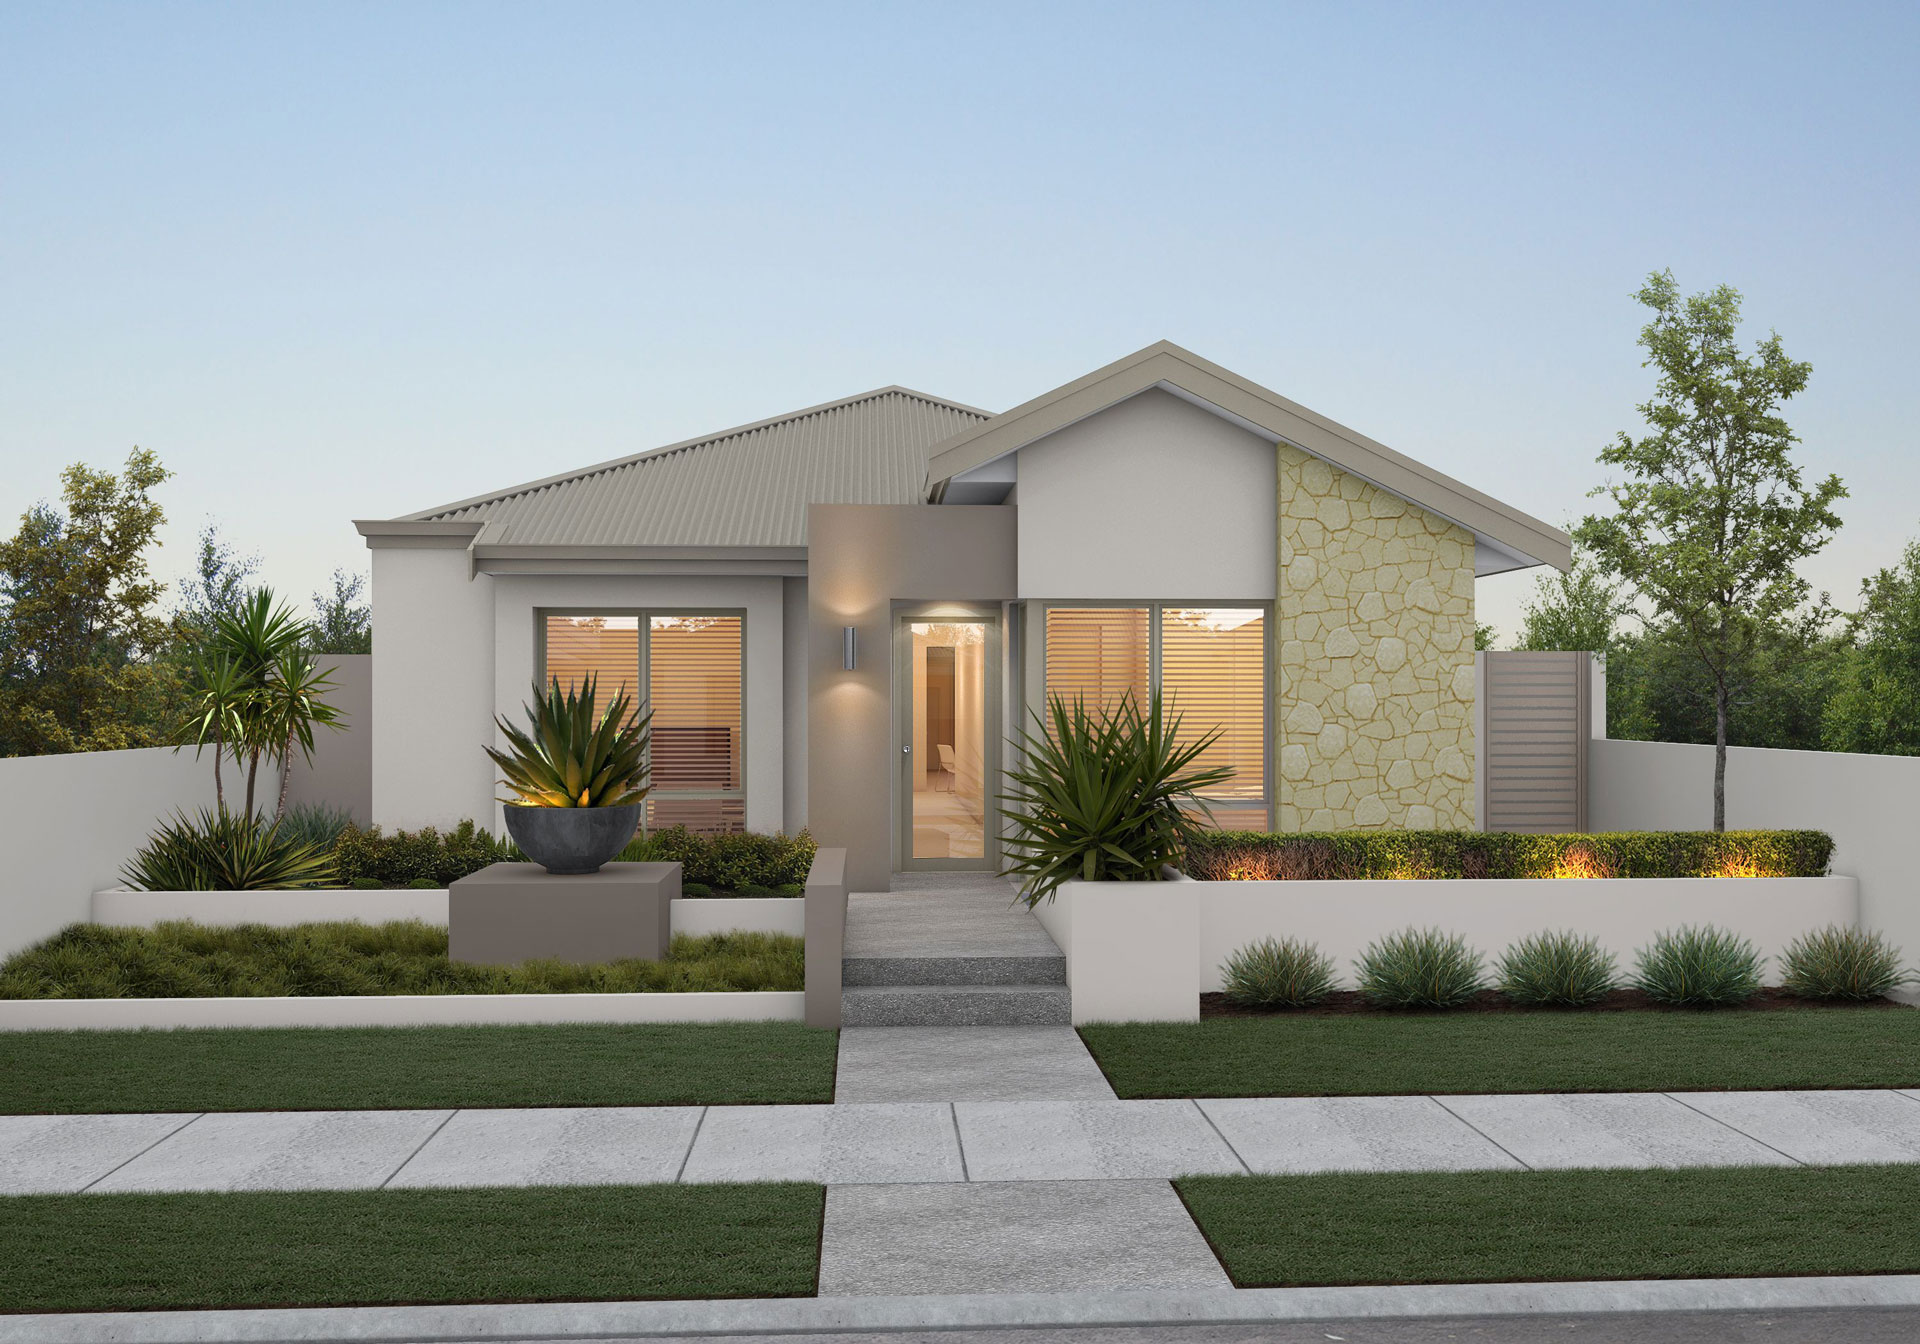 House and Land Package in Perth located in Maddington, WA